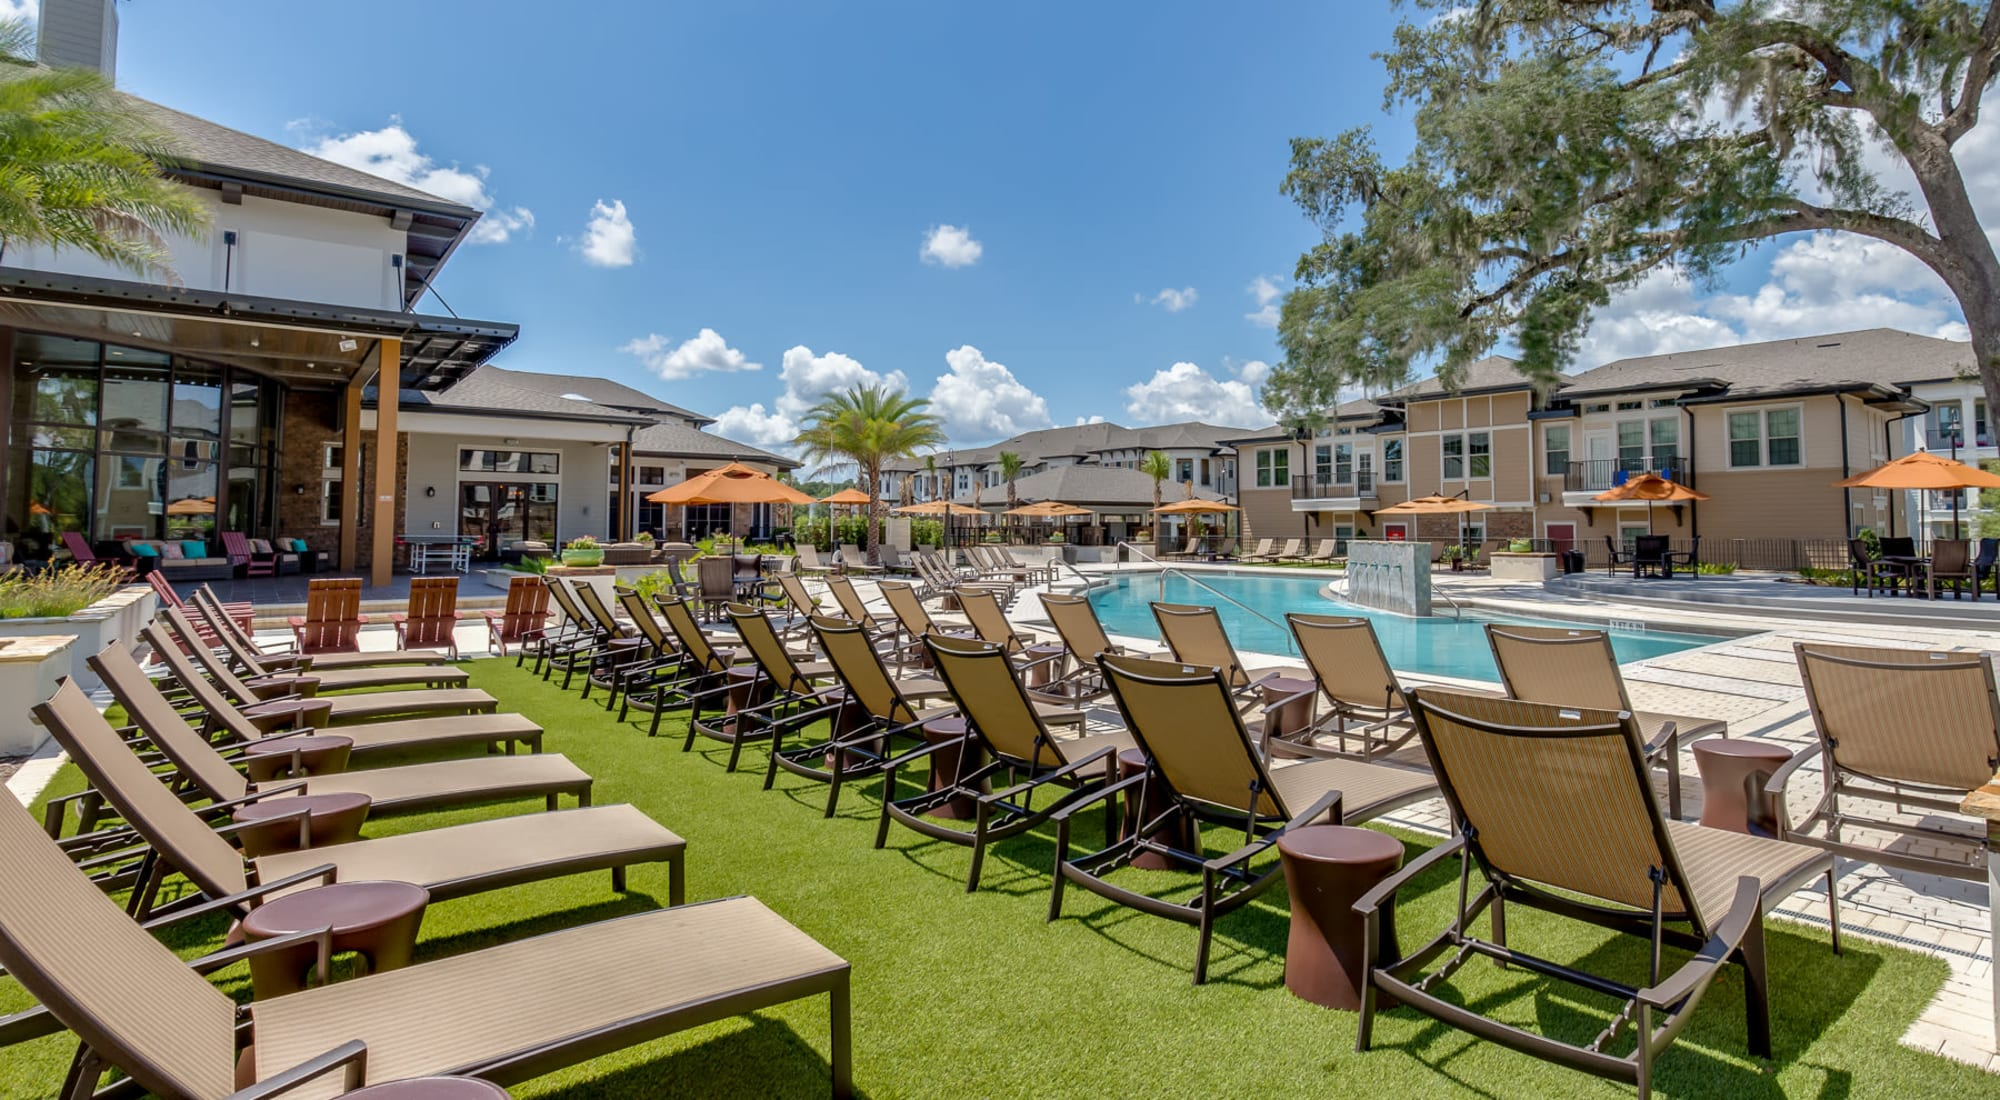 Apartments at The Loree in Jacksonville, Florida